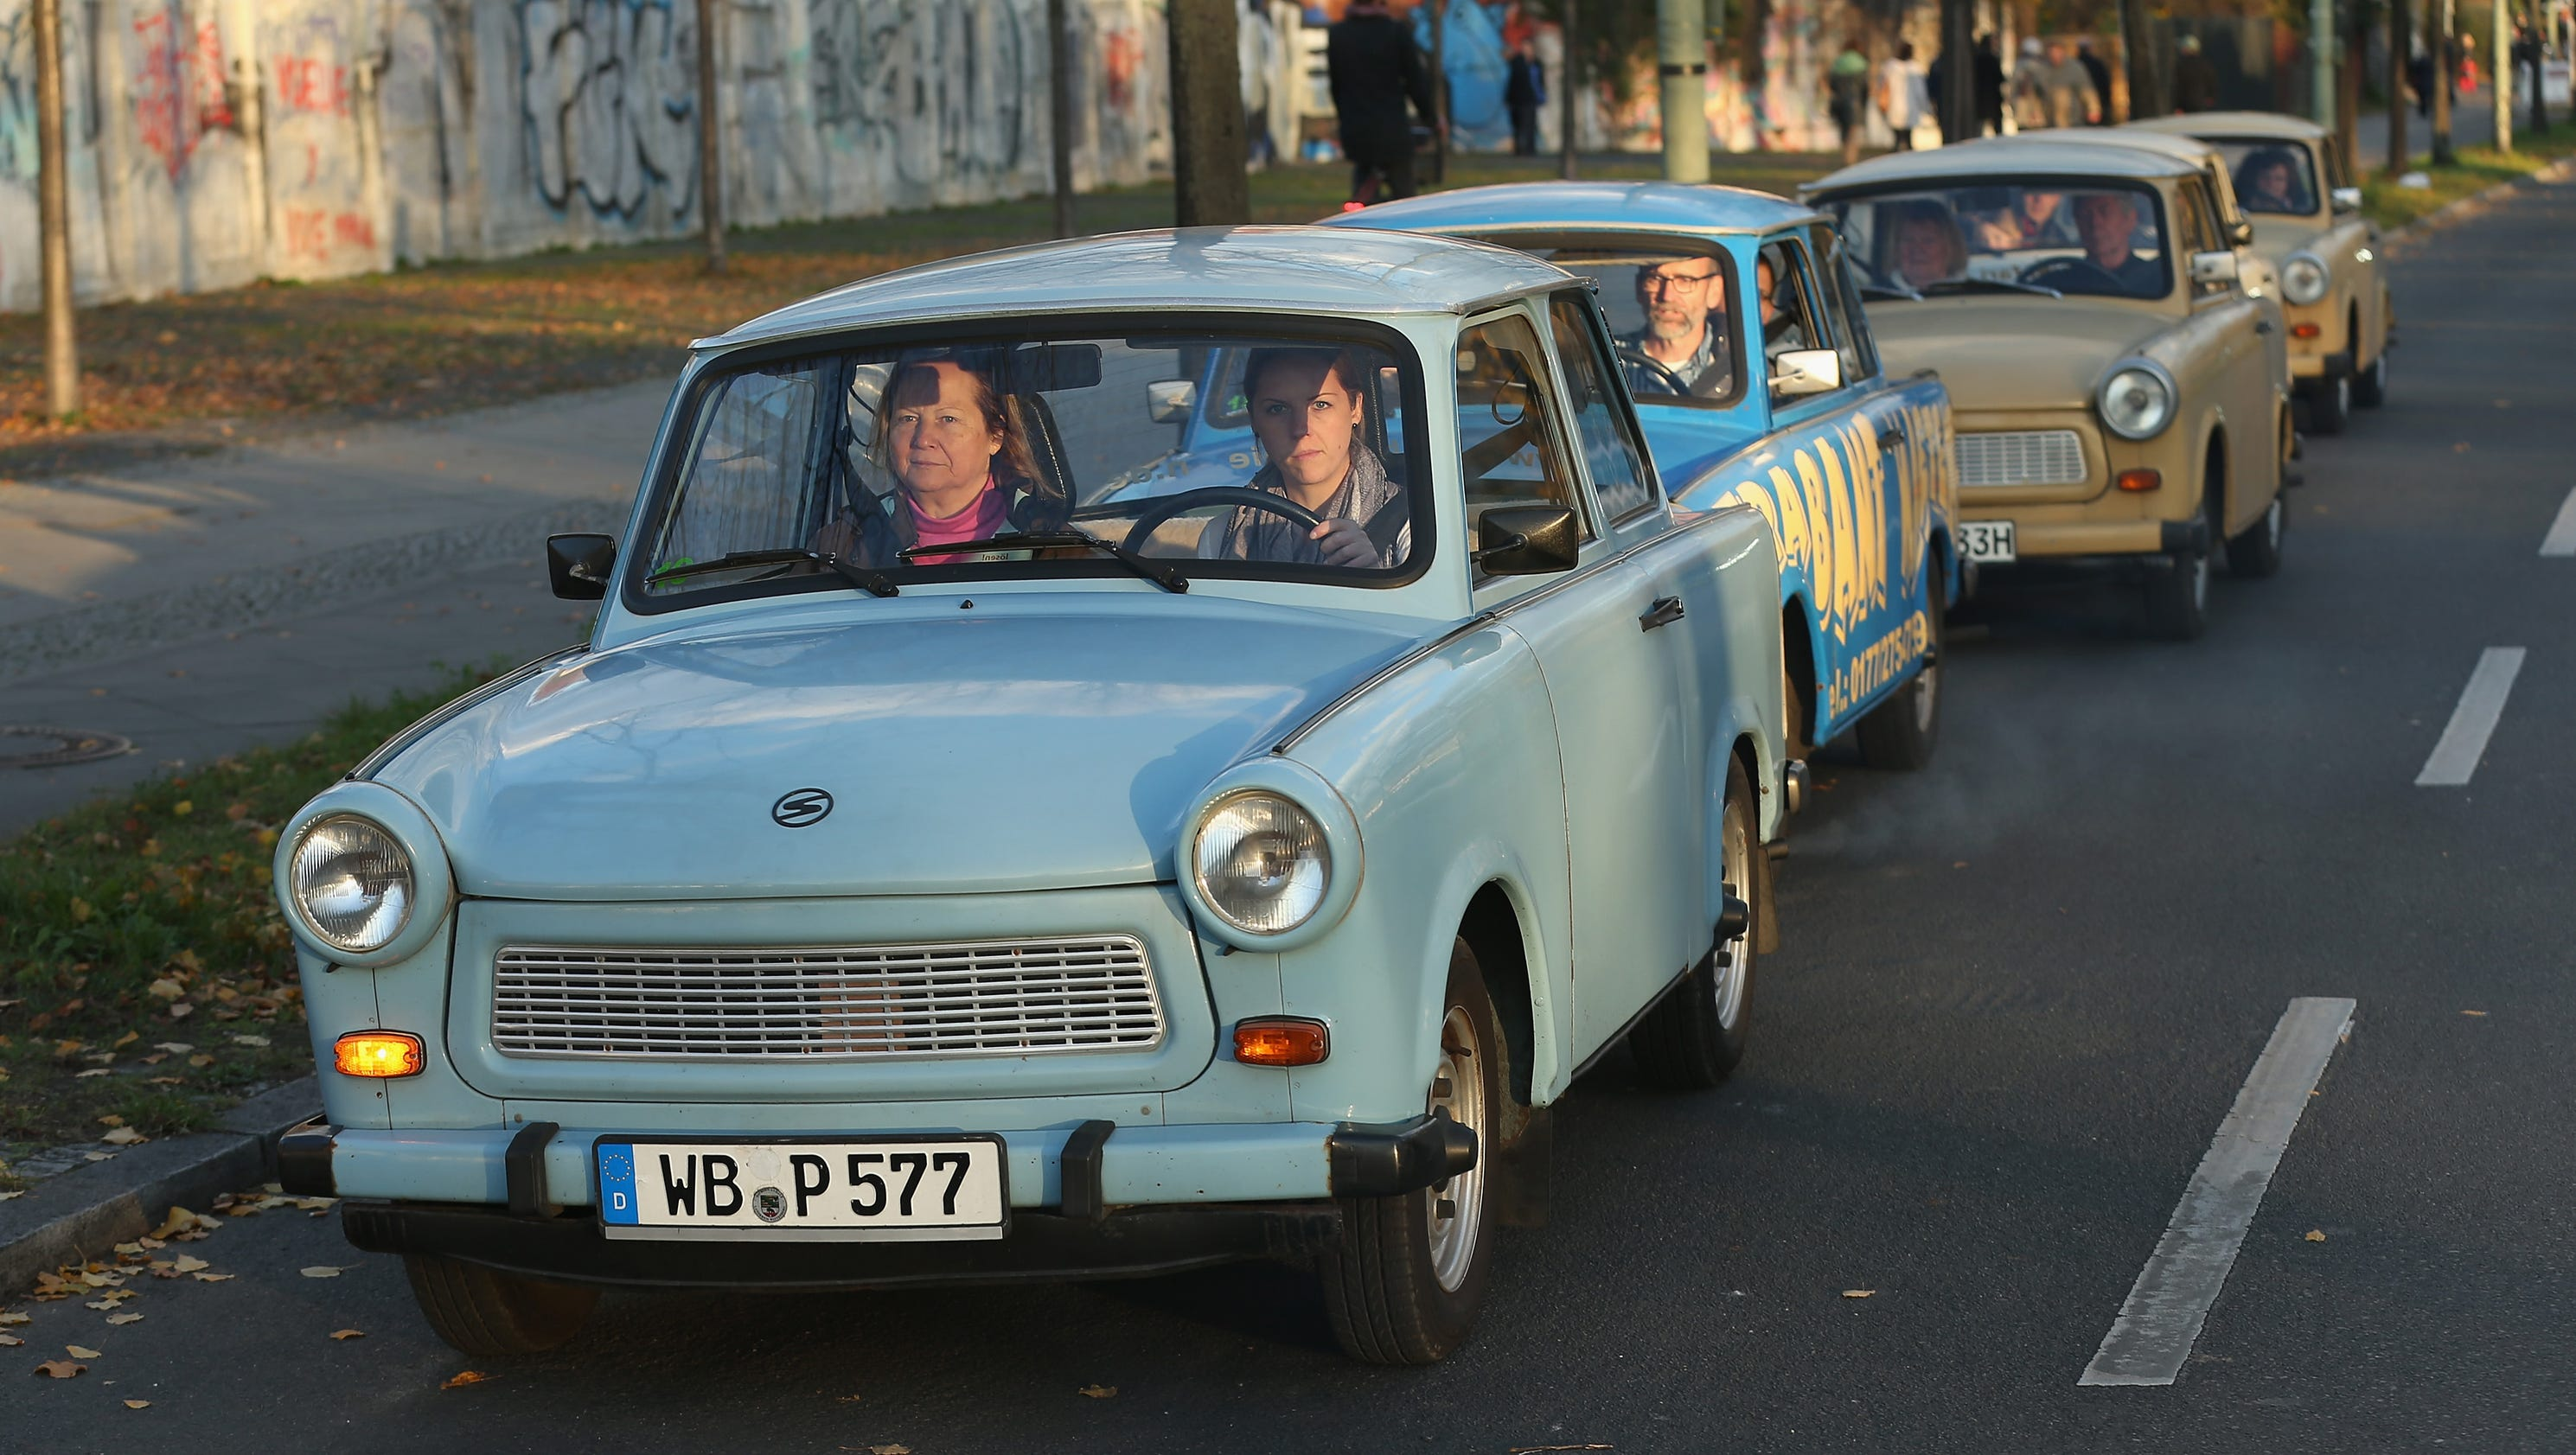 The unique East German Trabant car celebrates 60 years